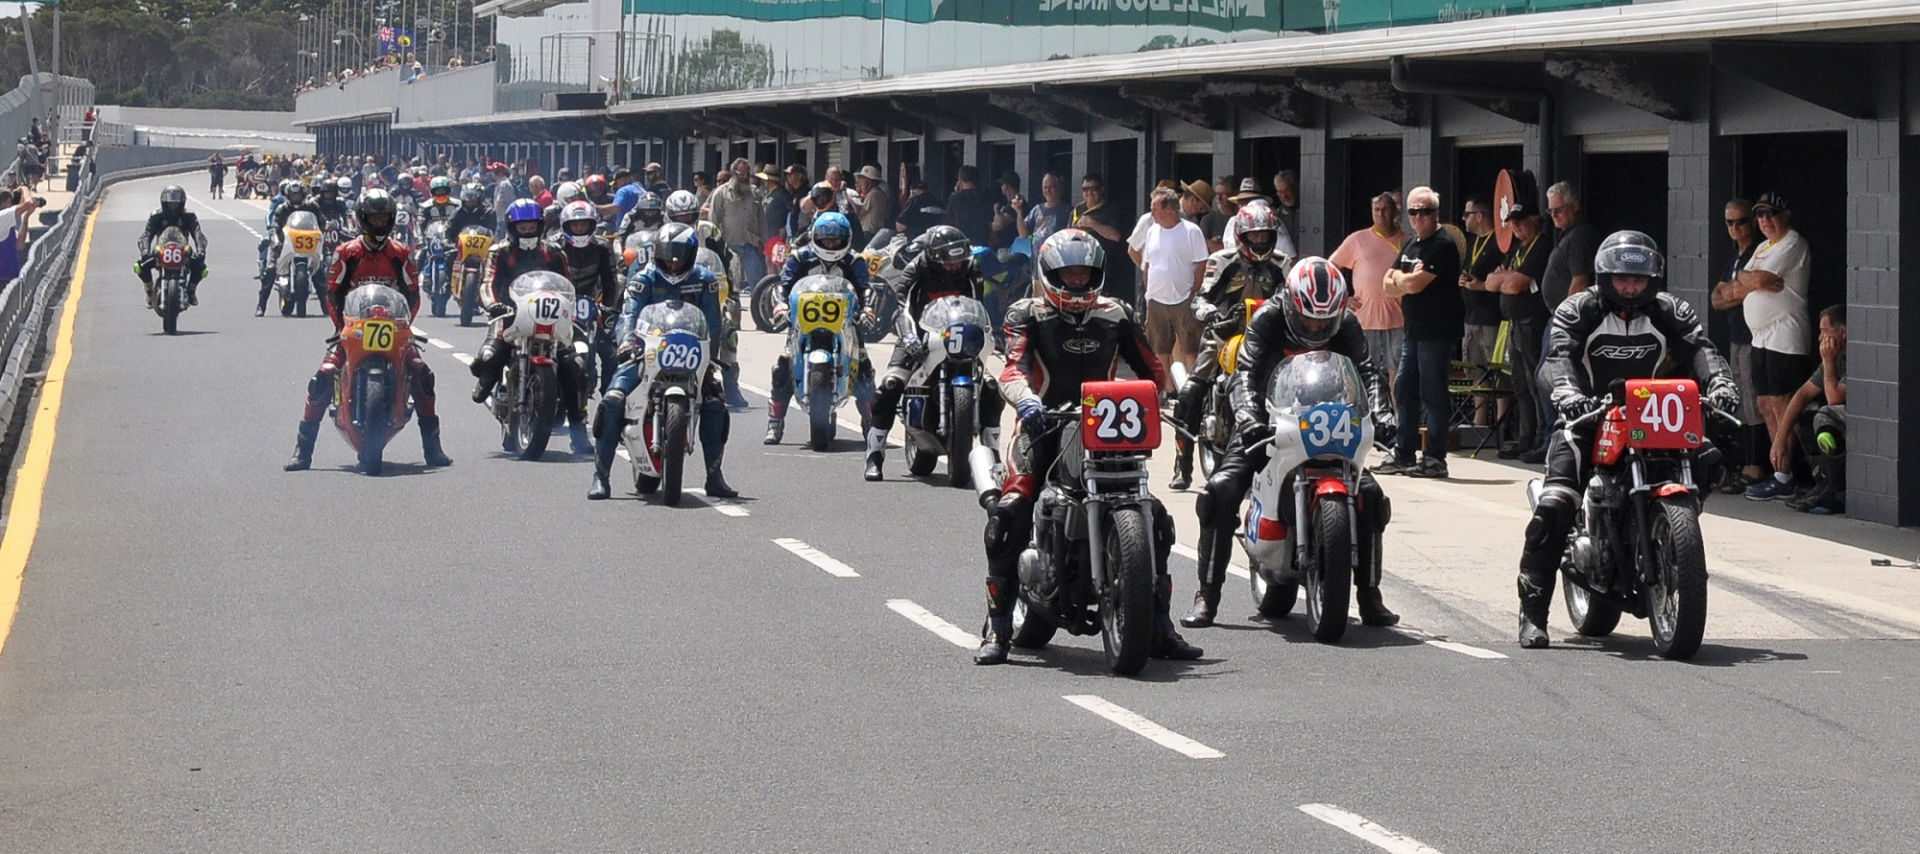 Vintage motorcycles on pit lane at Phillip Island during a past International Island Classic event. Photo courtesy of Phillip Island Grand Prix Circuit.